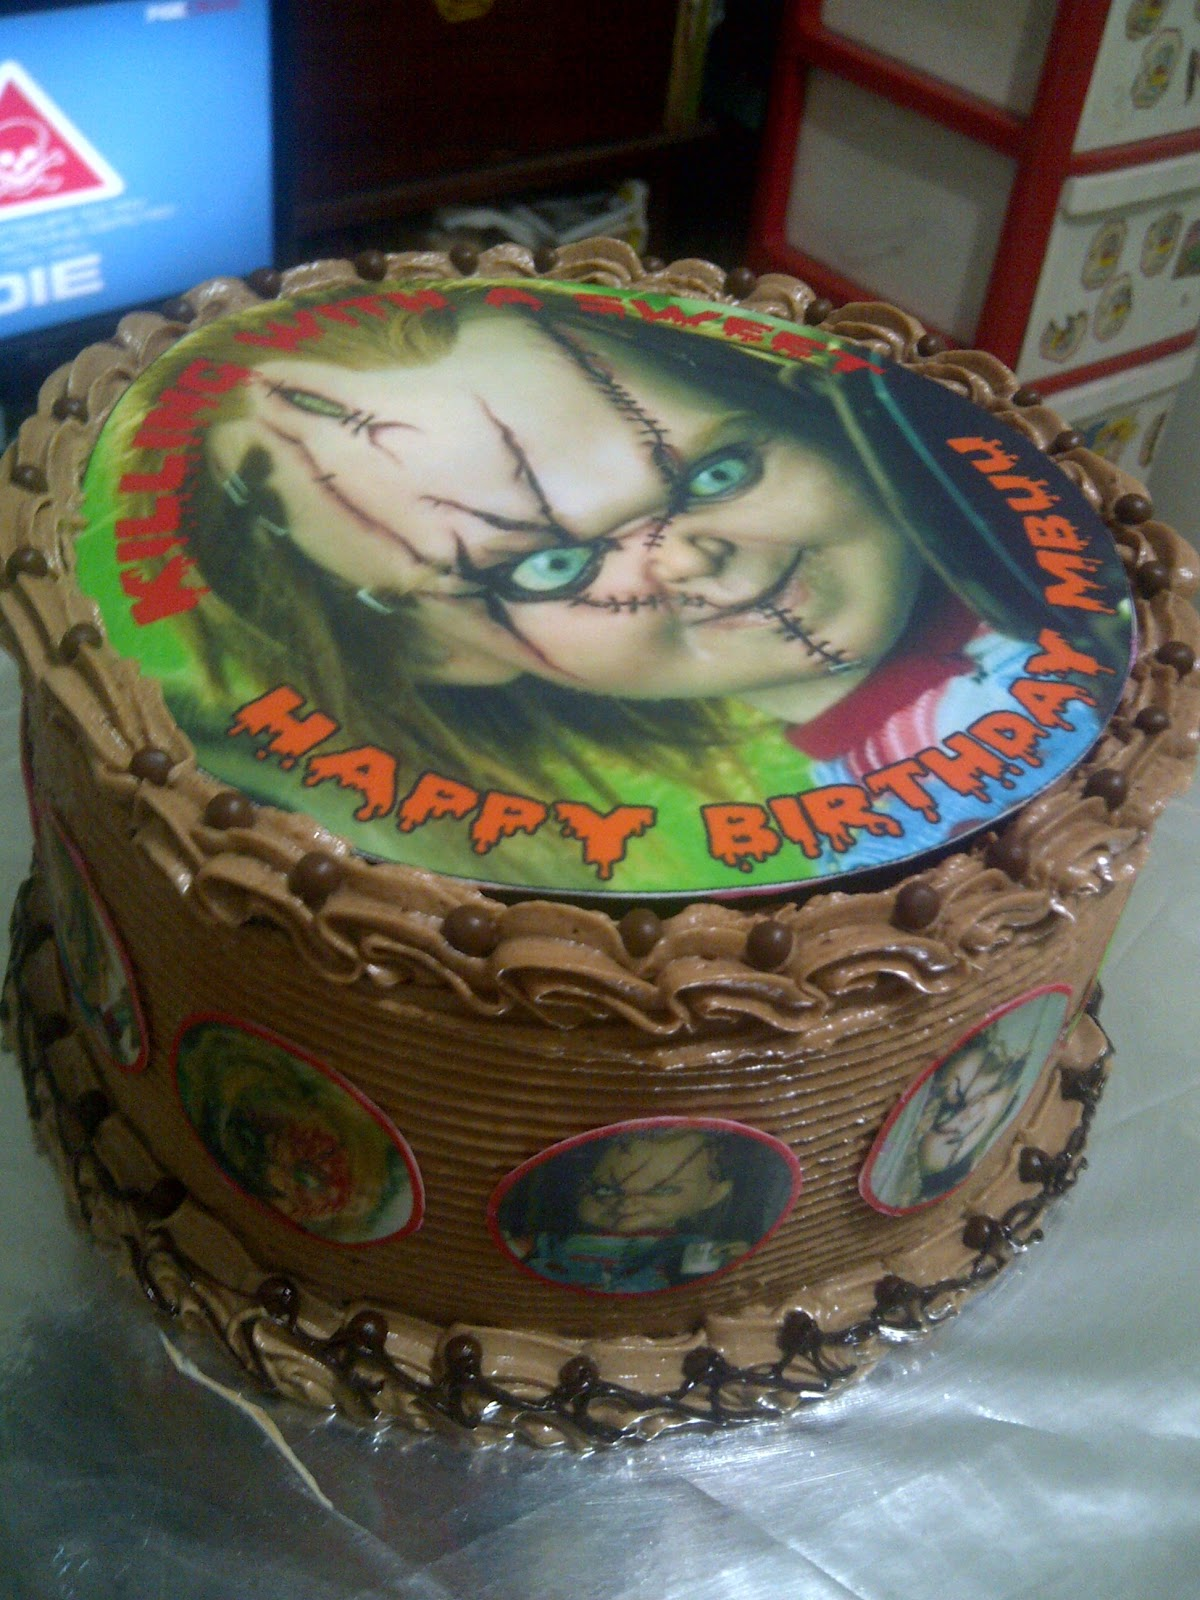 Mardyanis Kitchen Scary Chucky Themed Birthday Cake